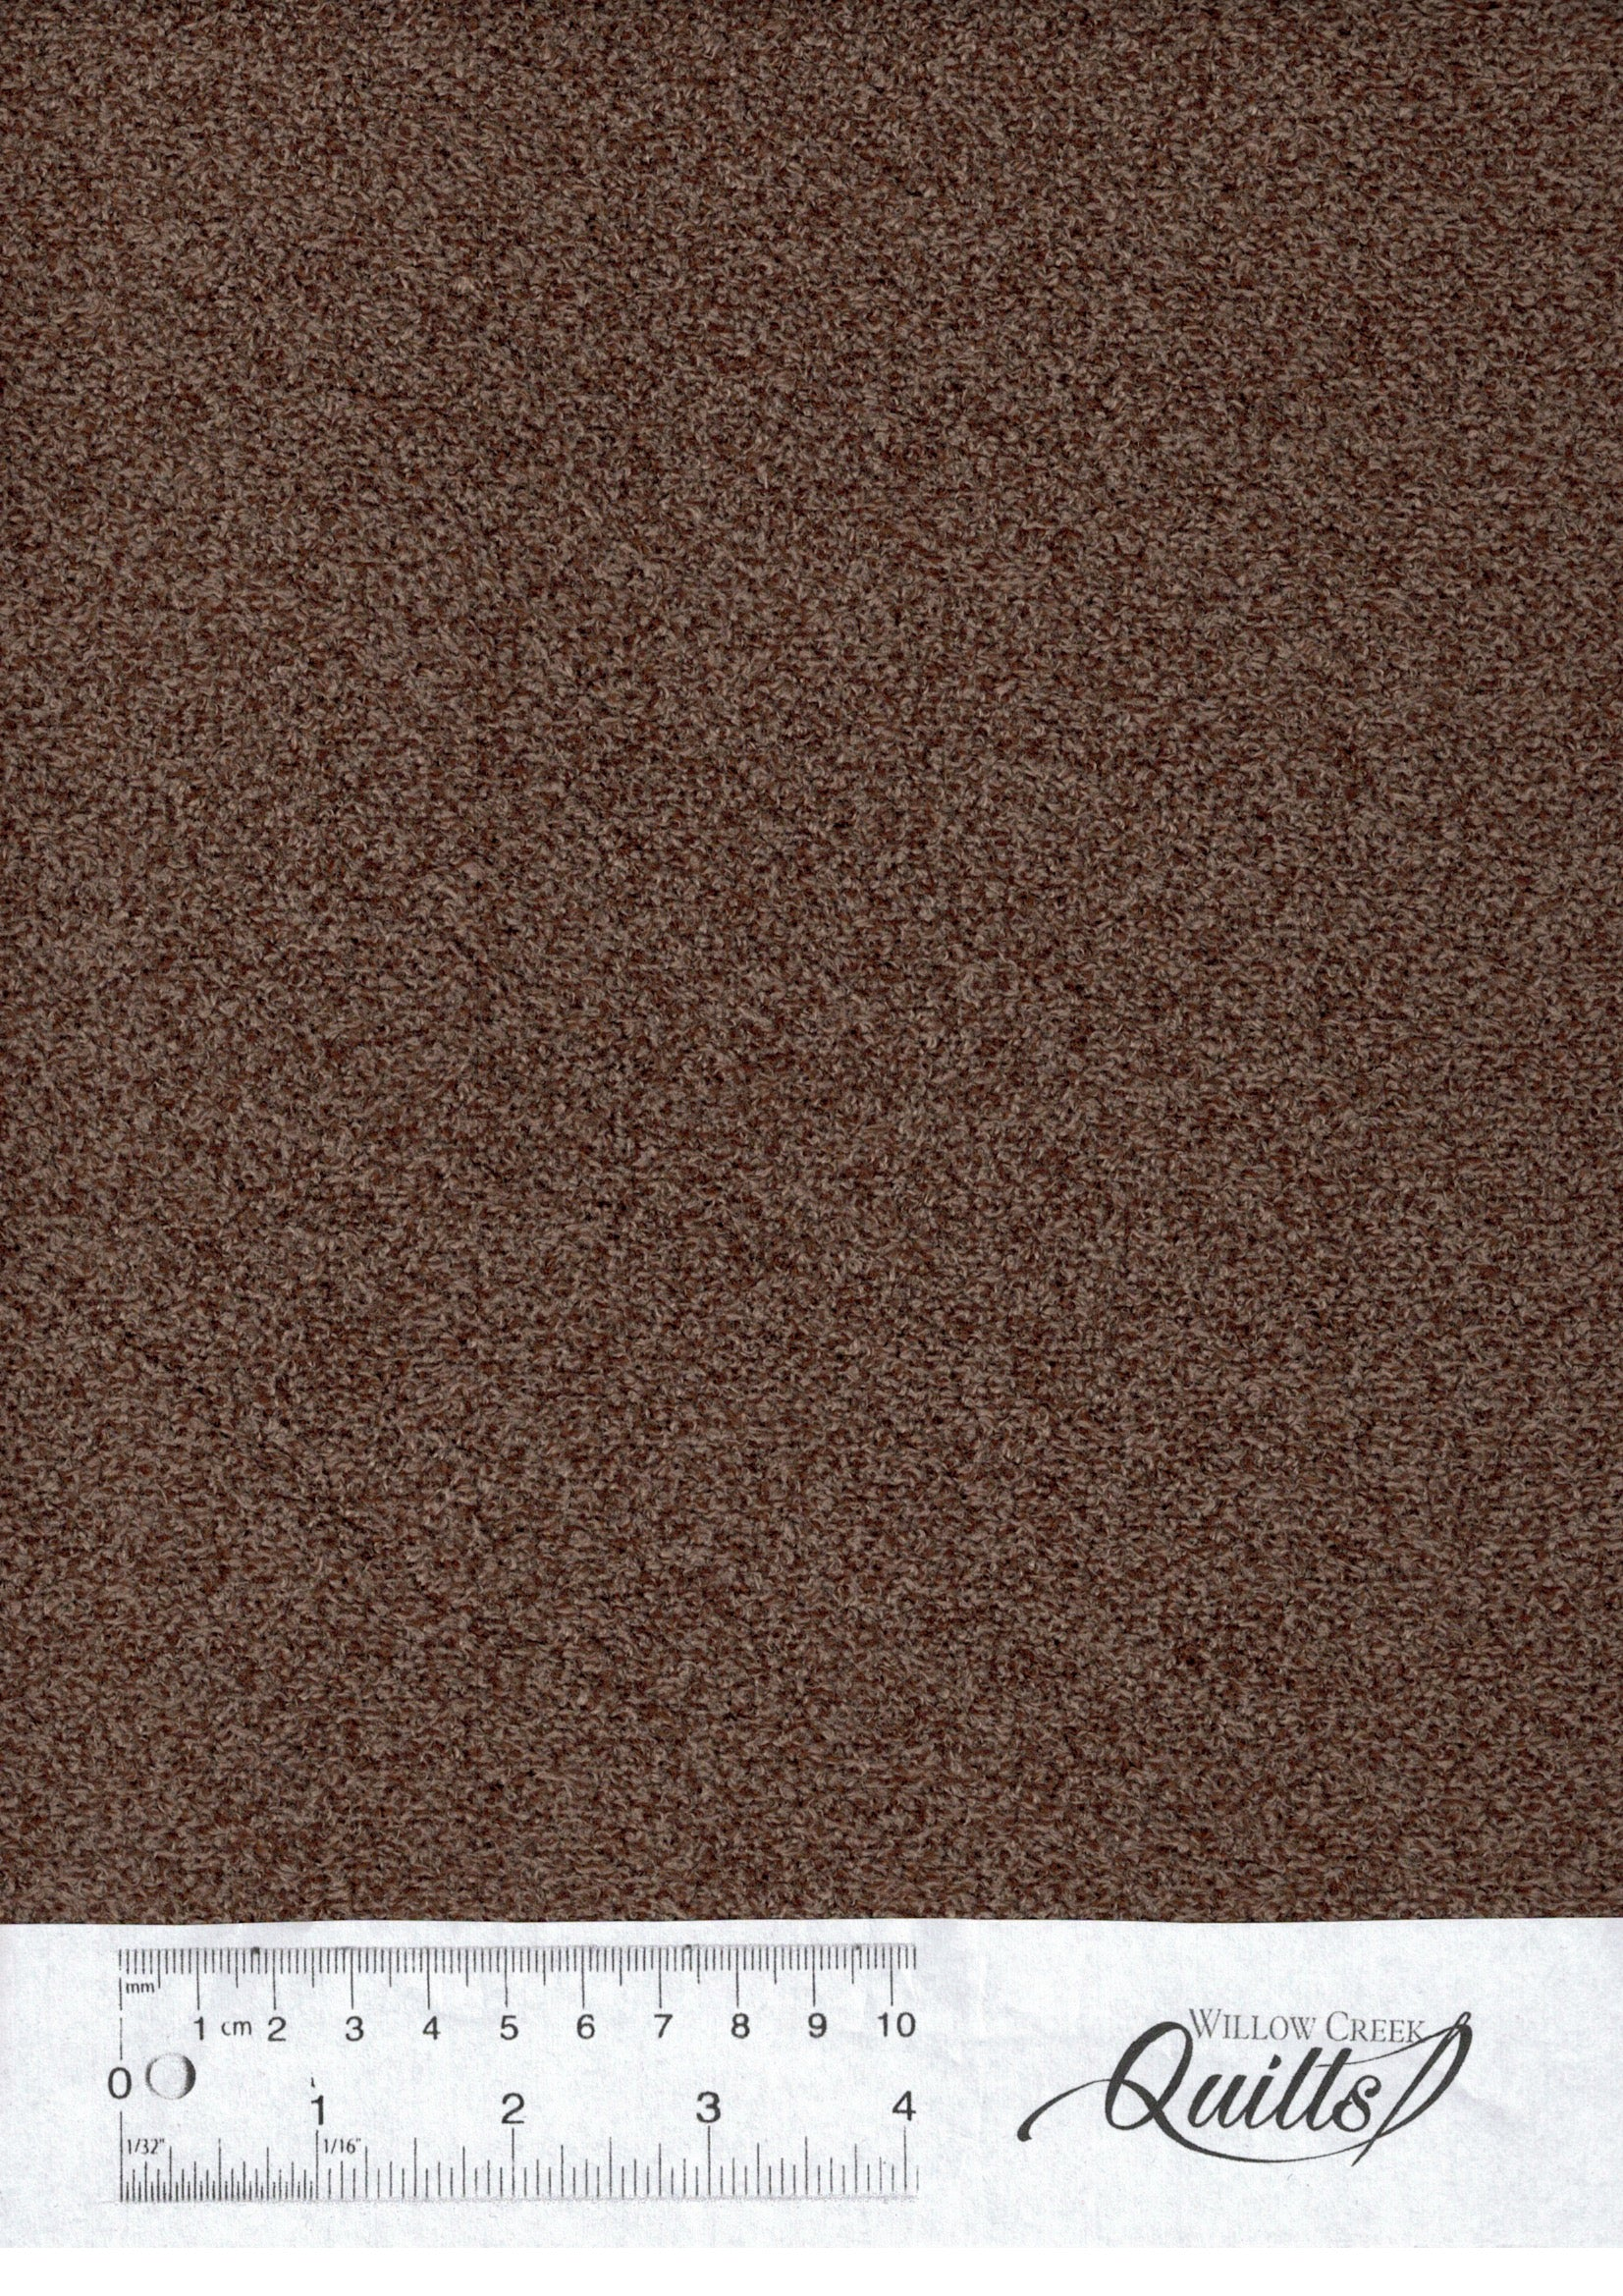 Fireside Two Tone - Mocha Chocolate - 9002-3217